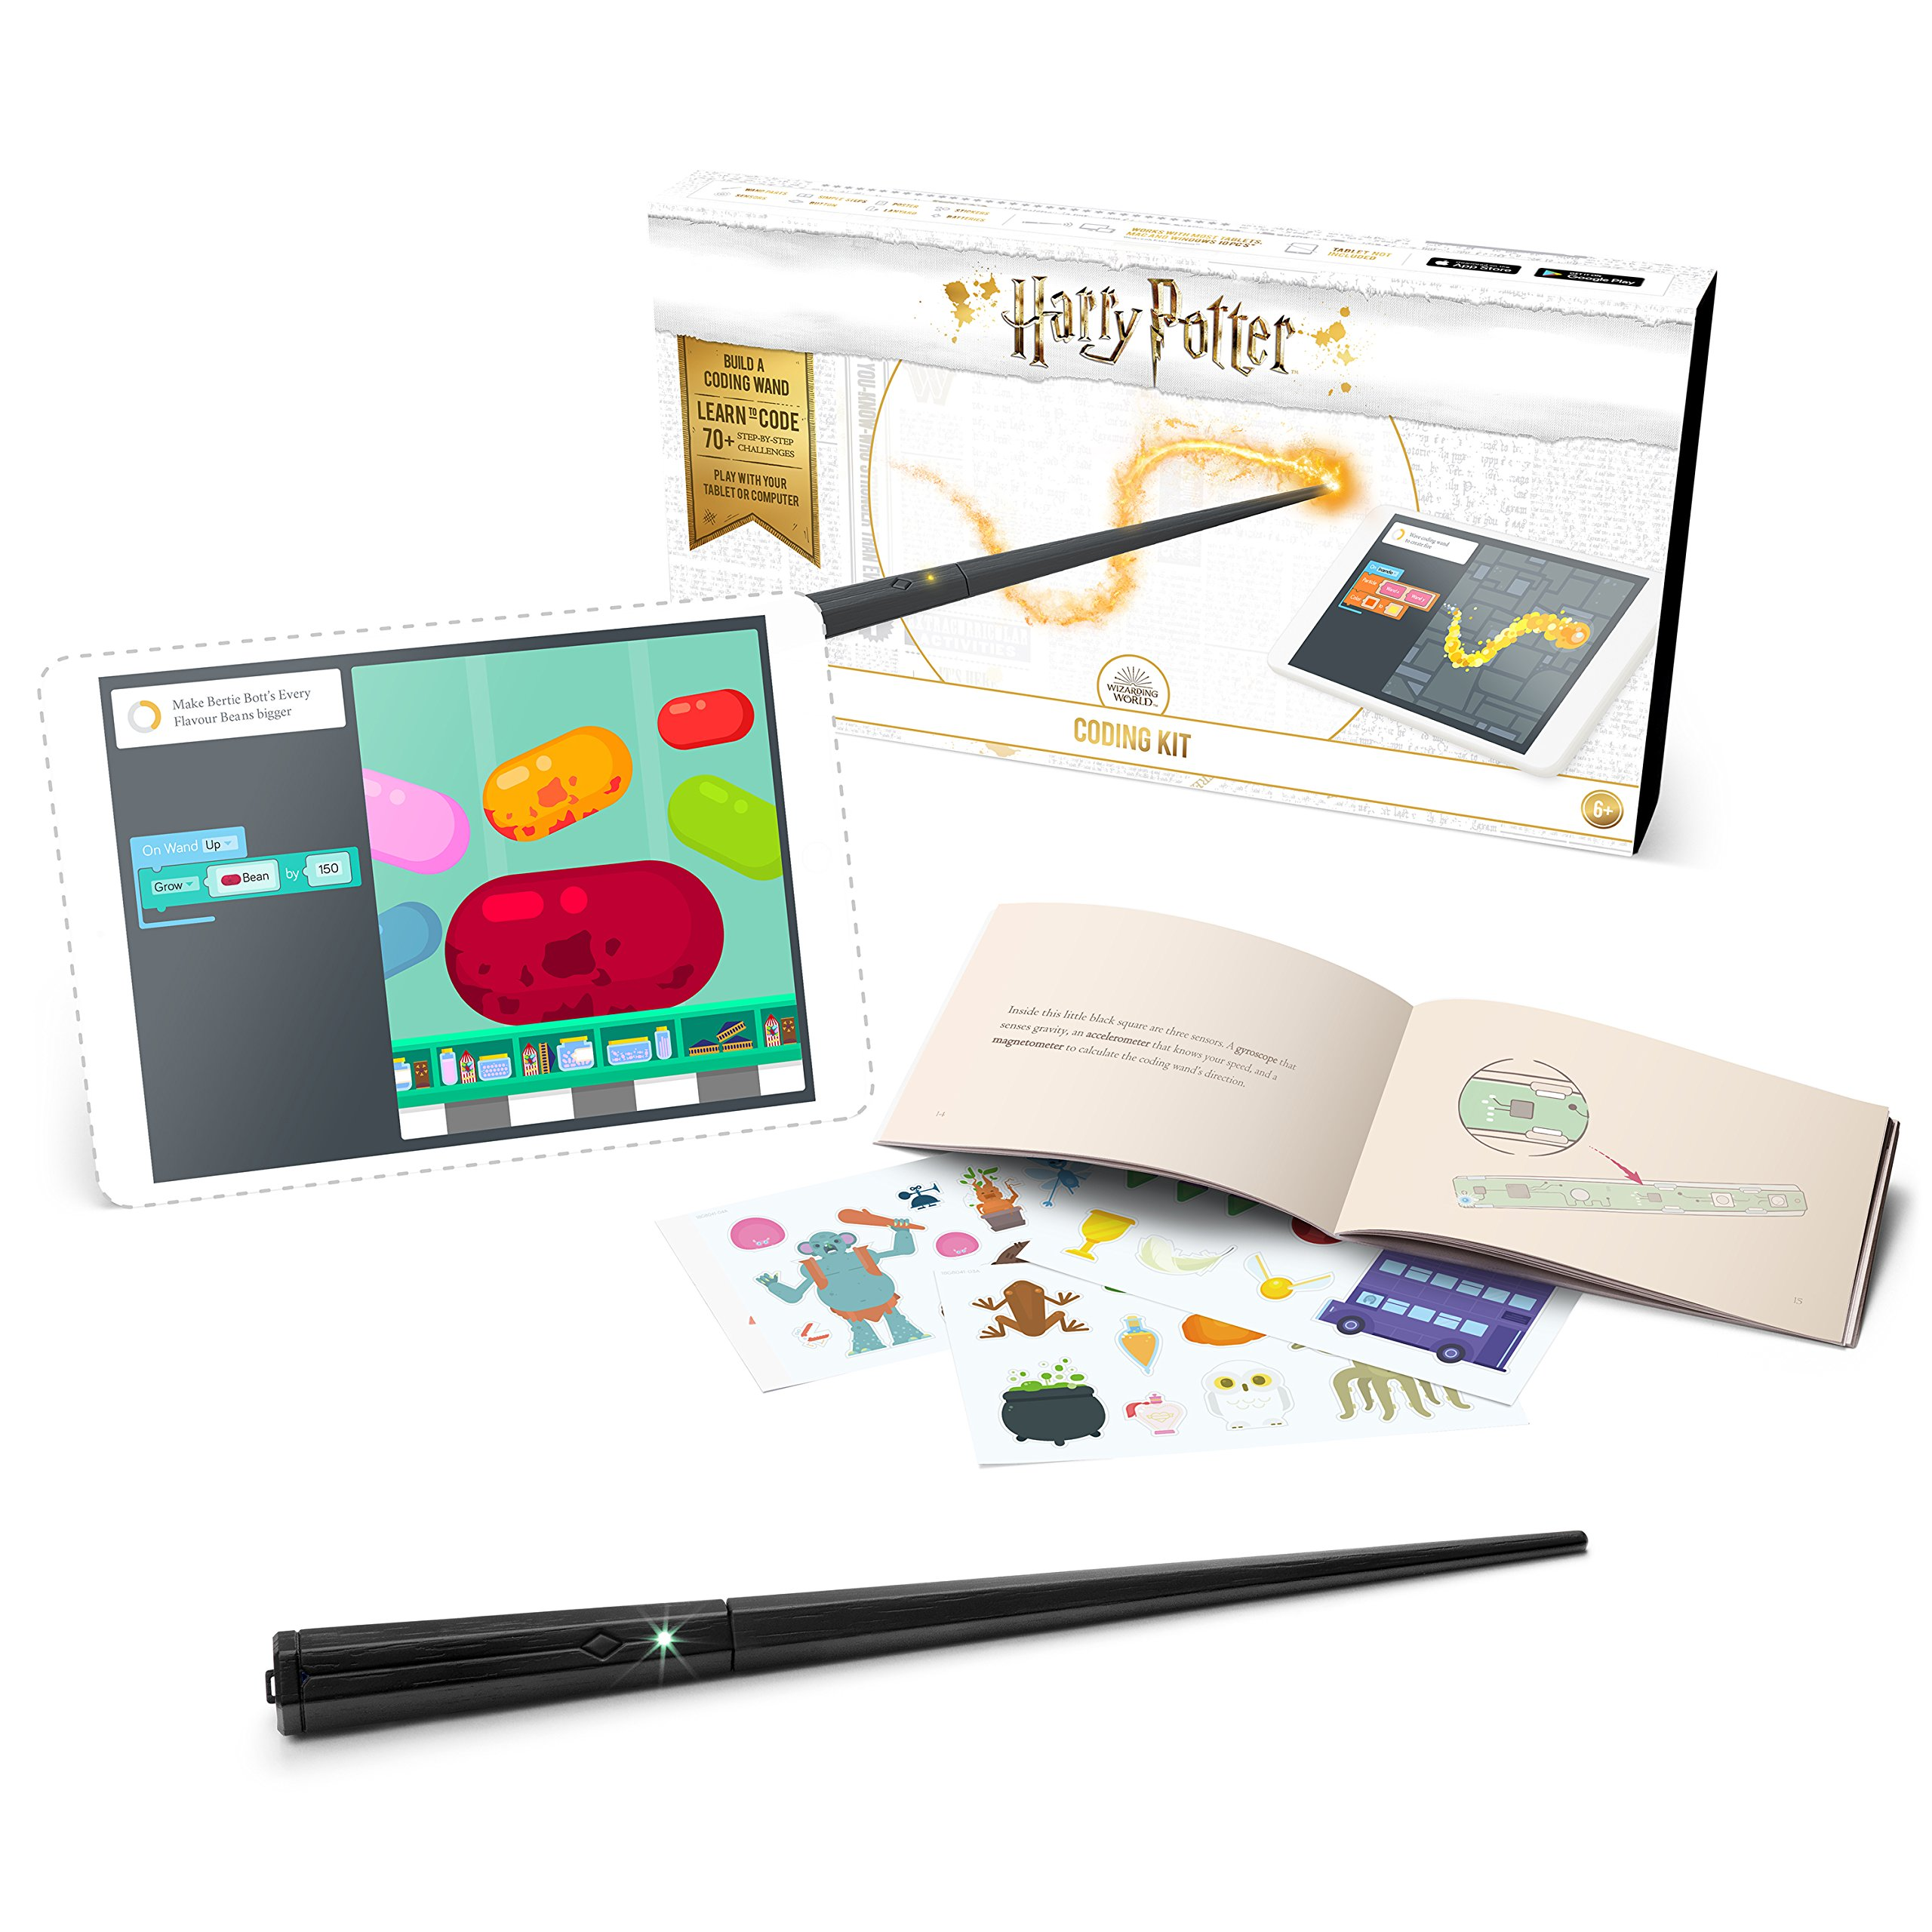 Kano Harry Potter Coding Kit – Build a Wand. Learn To Code. Make Magic. by Kano (Image #1)